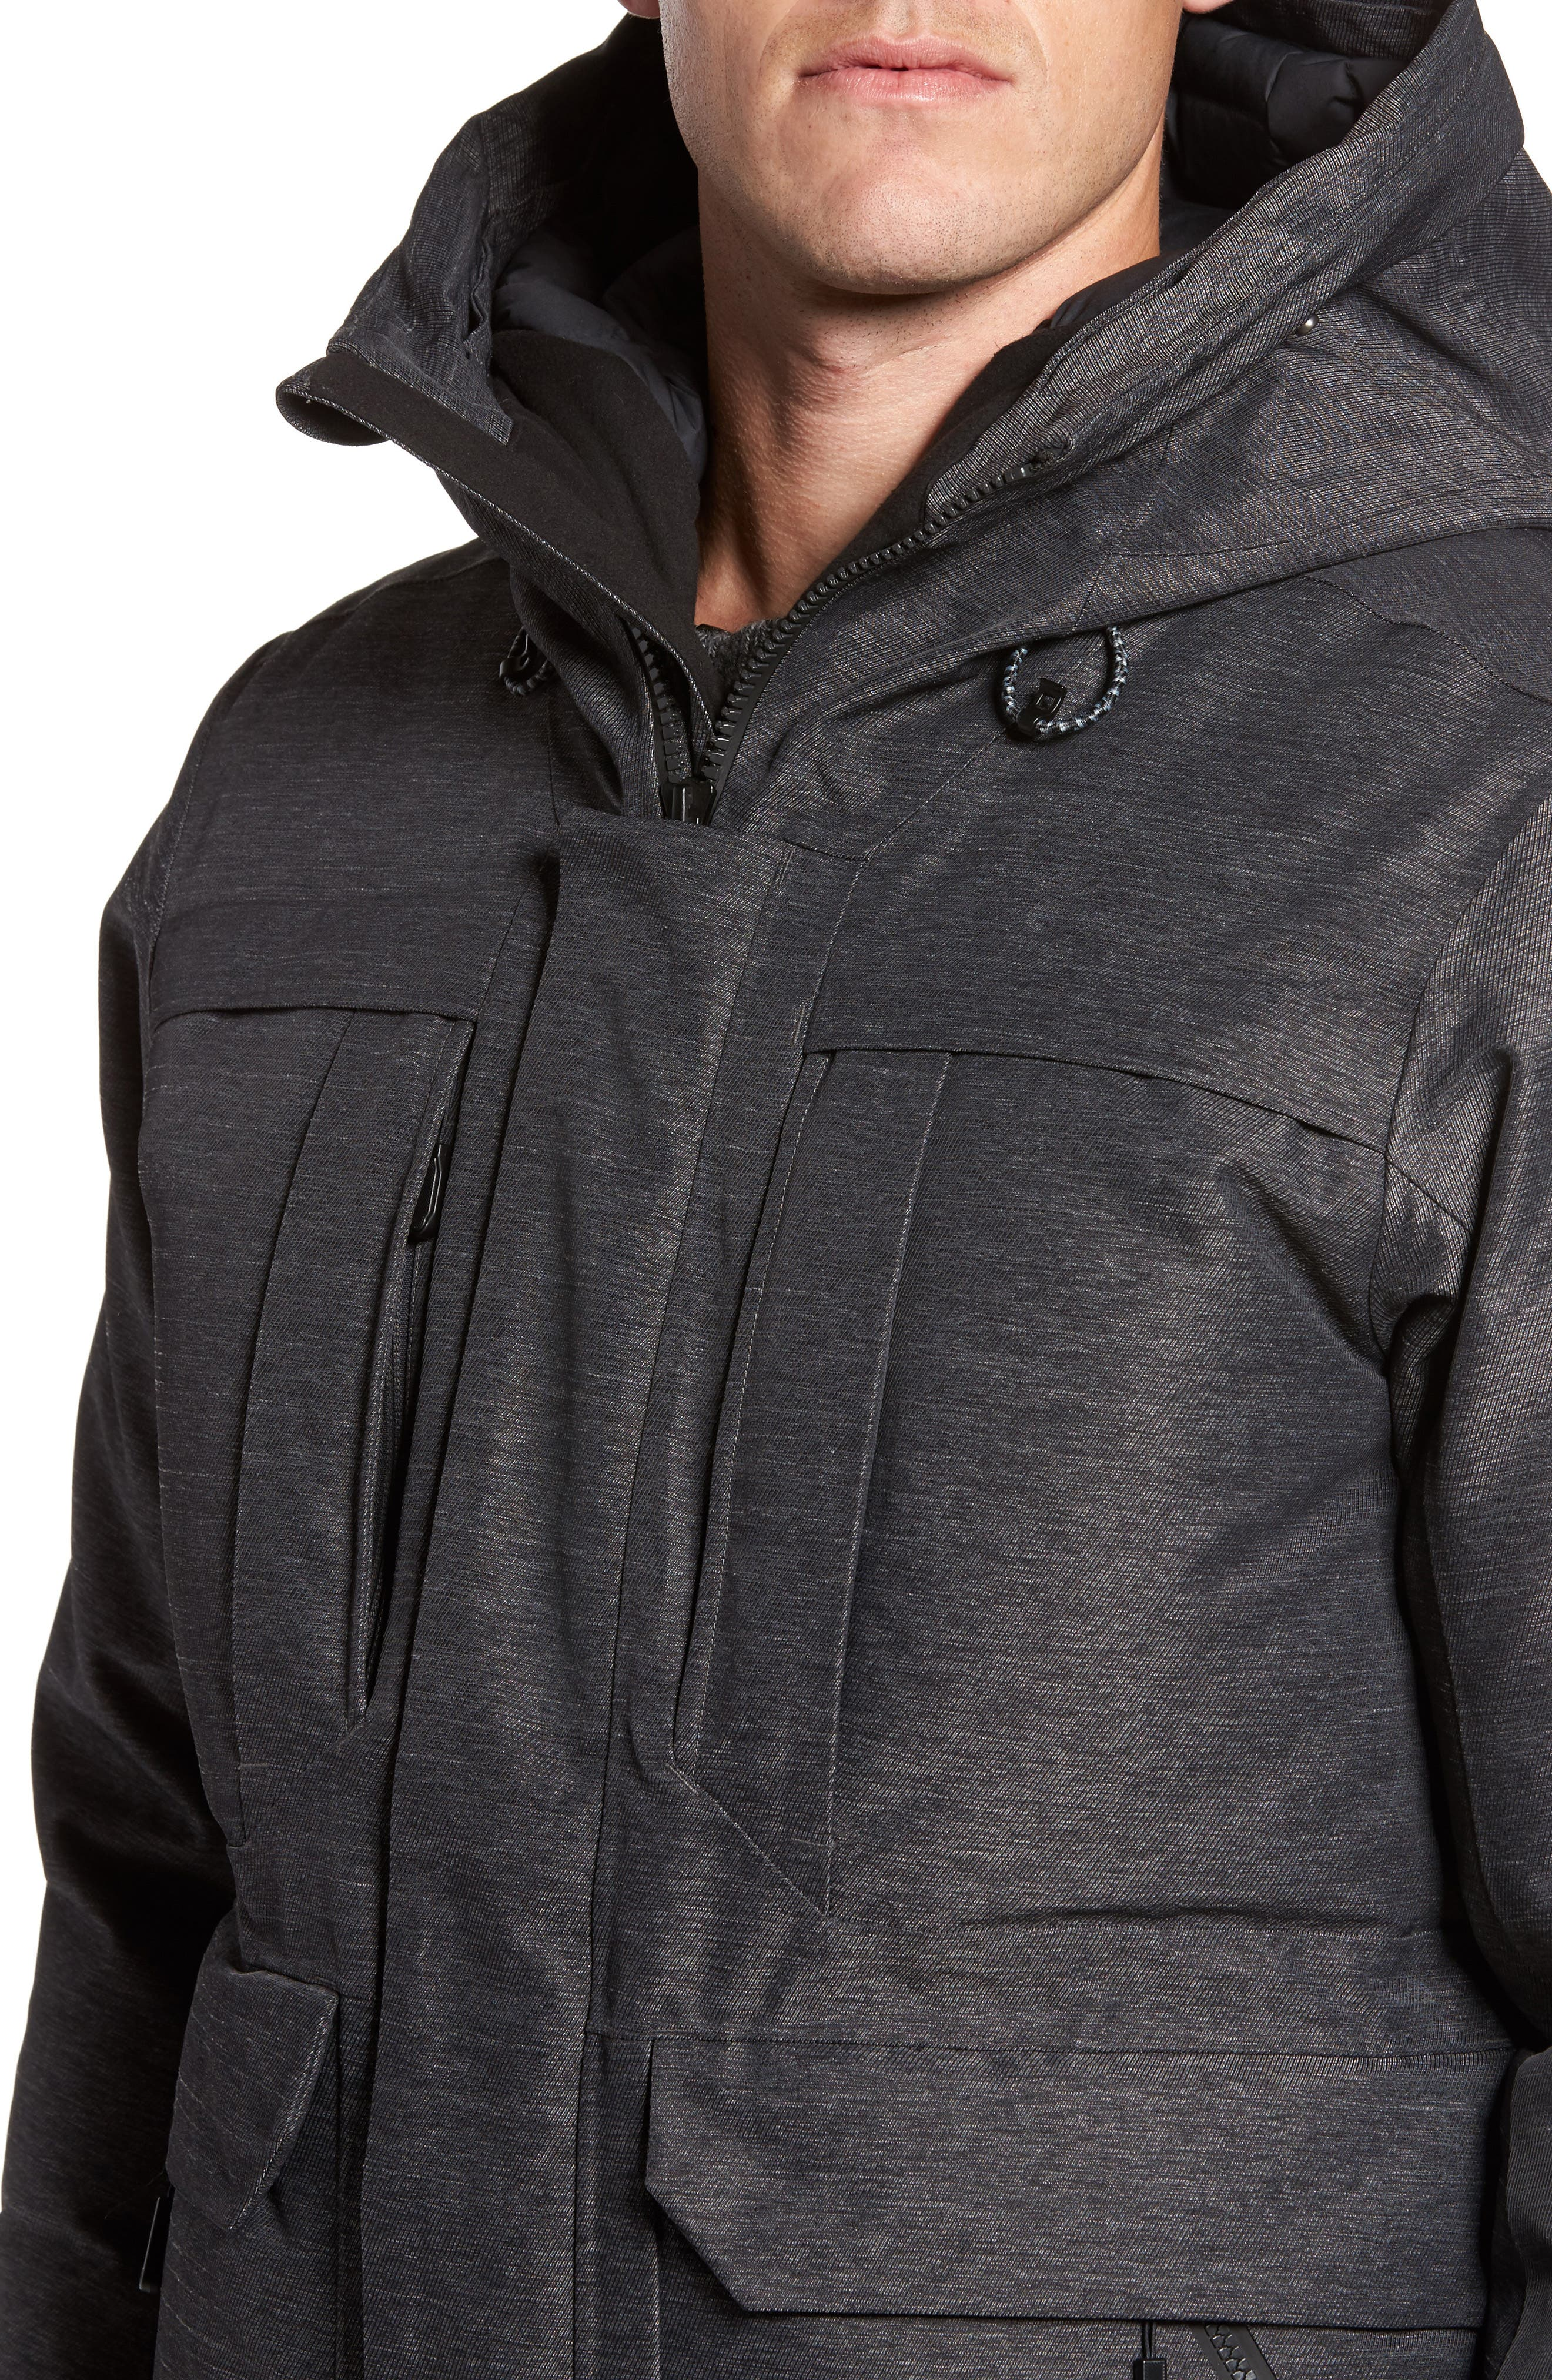 Cryos Expedition Gore-Tex<sup>®</sup> Bomber Jacket,                             Alternate thumbnail 11, color,